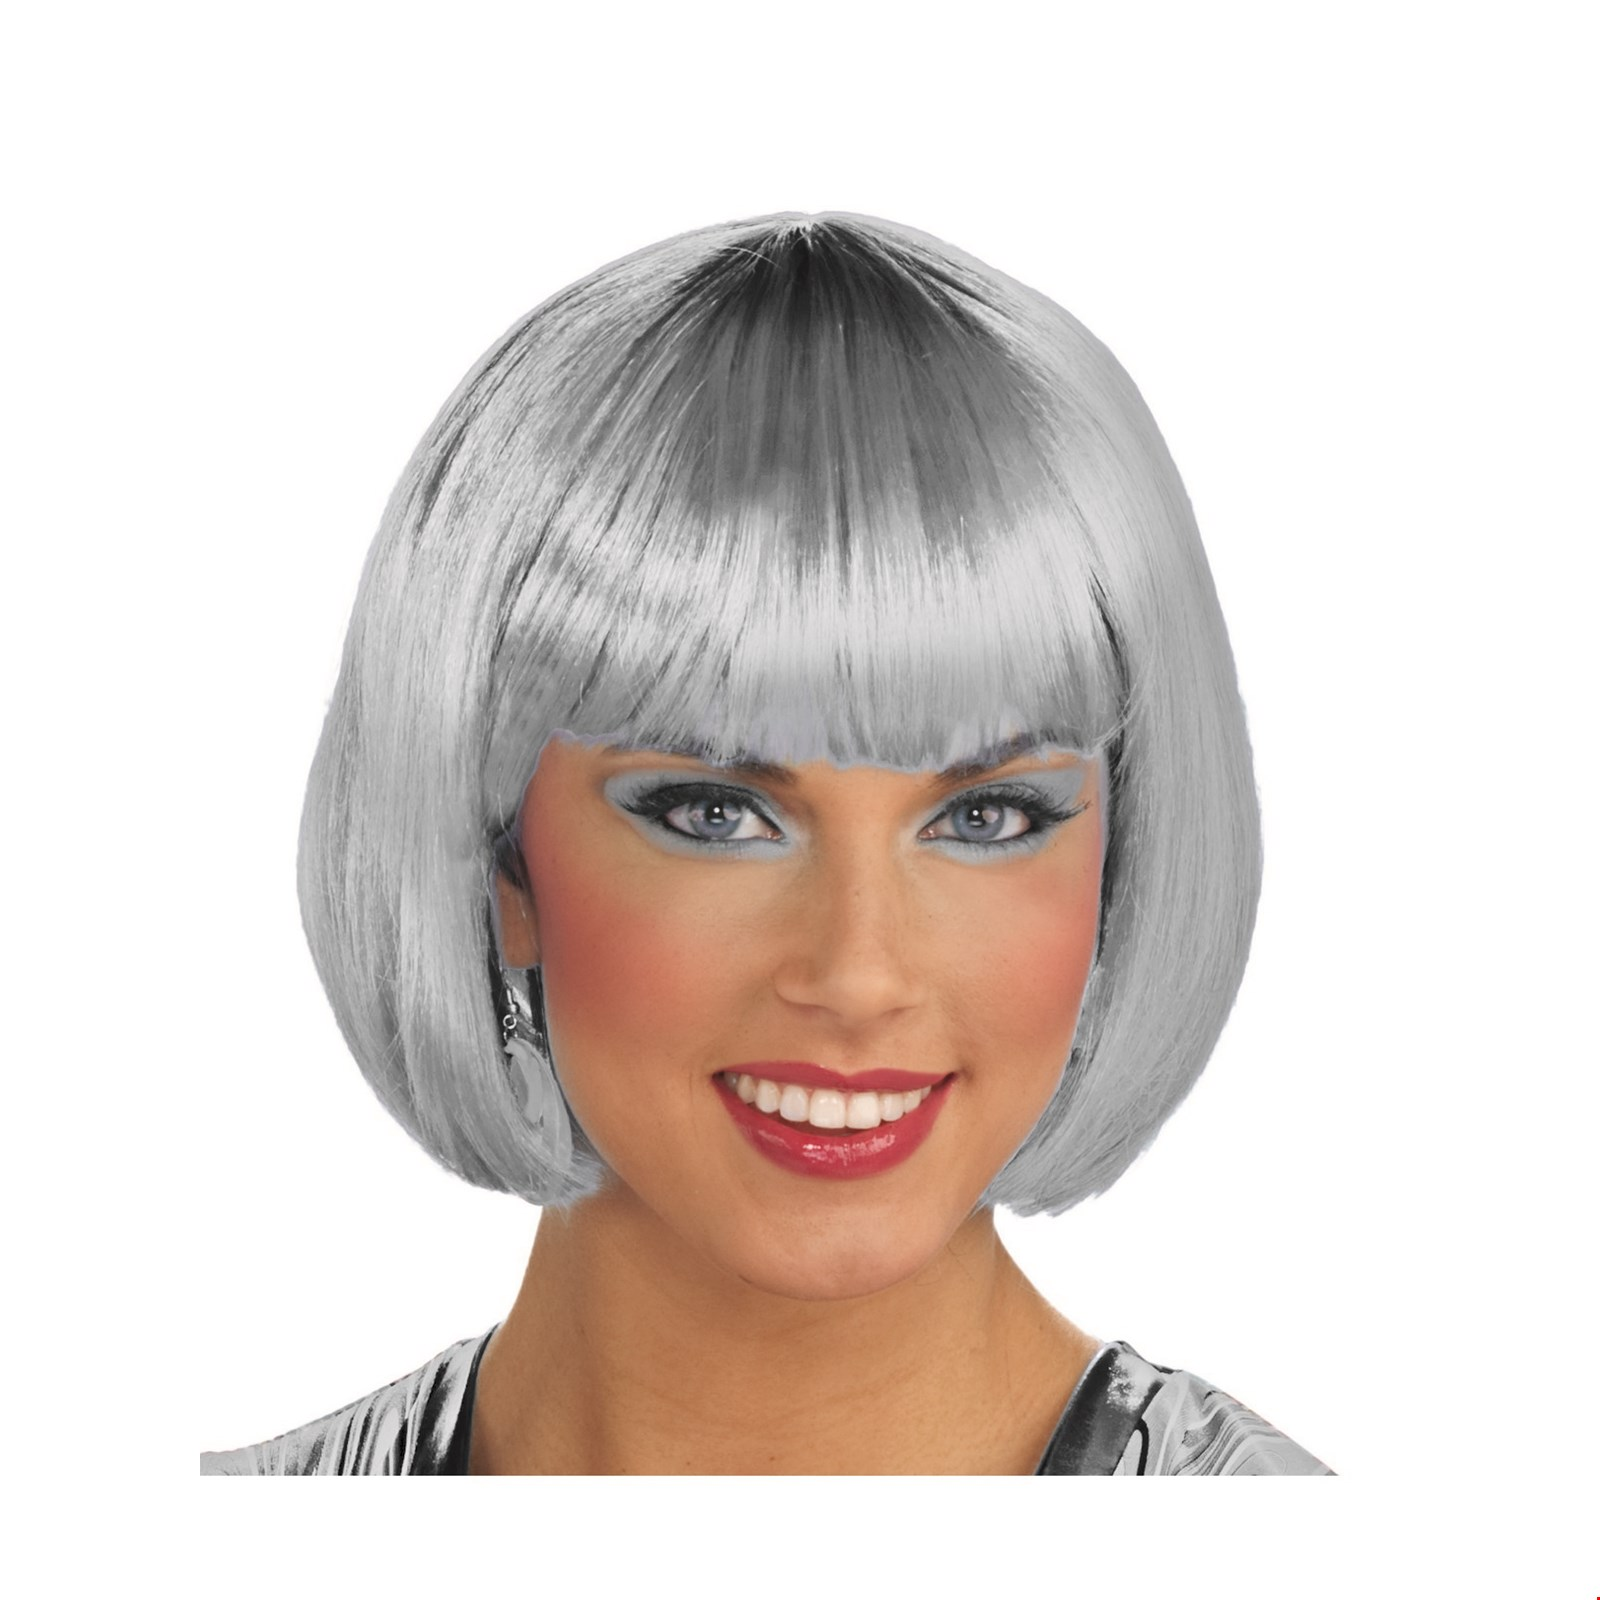 Silver Bob Wig Halloween Costume Accessory